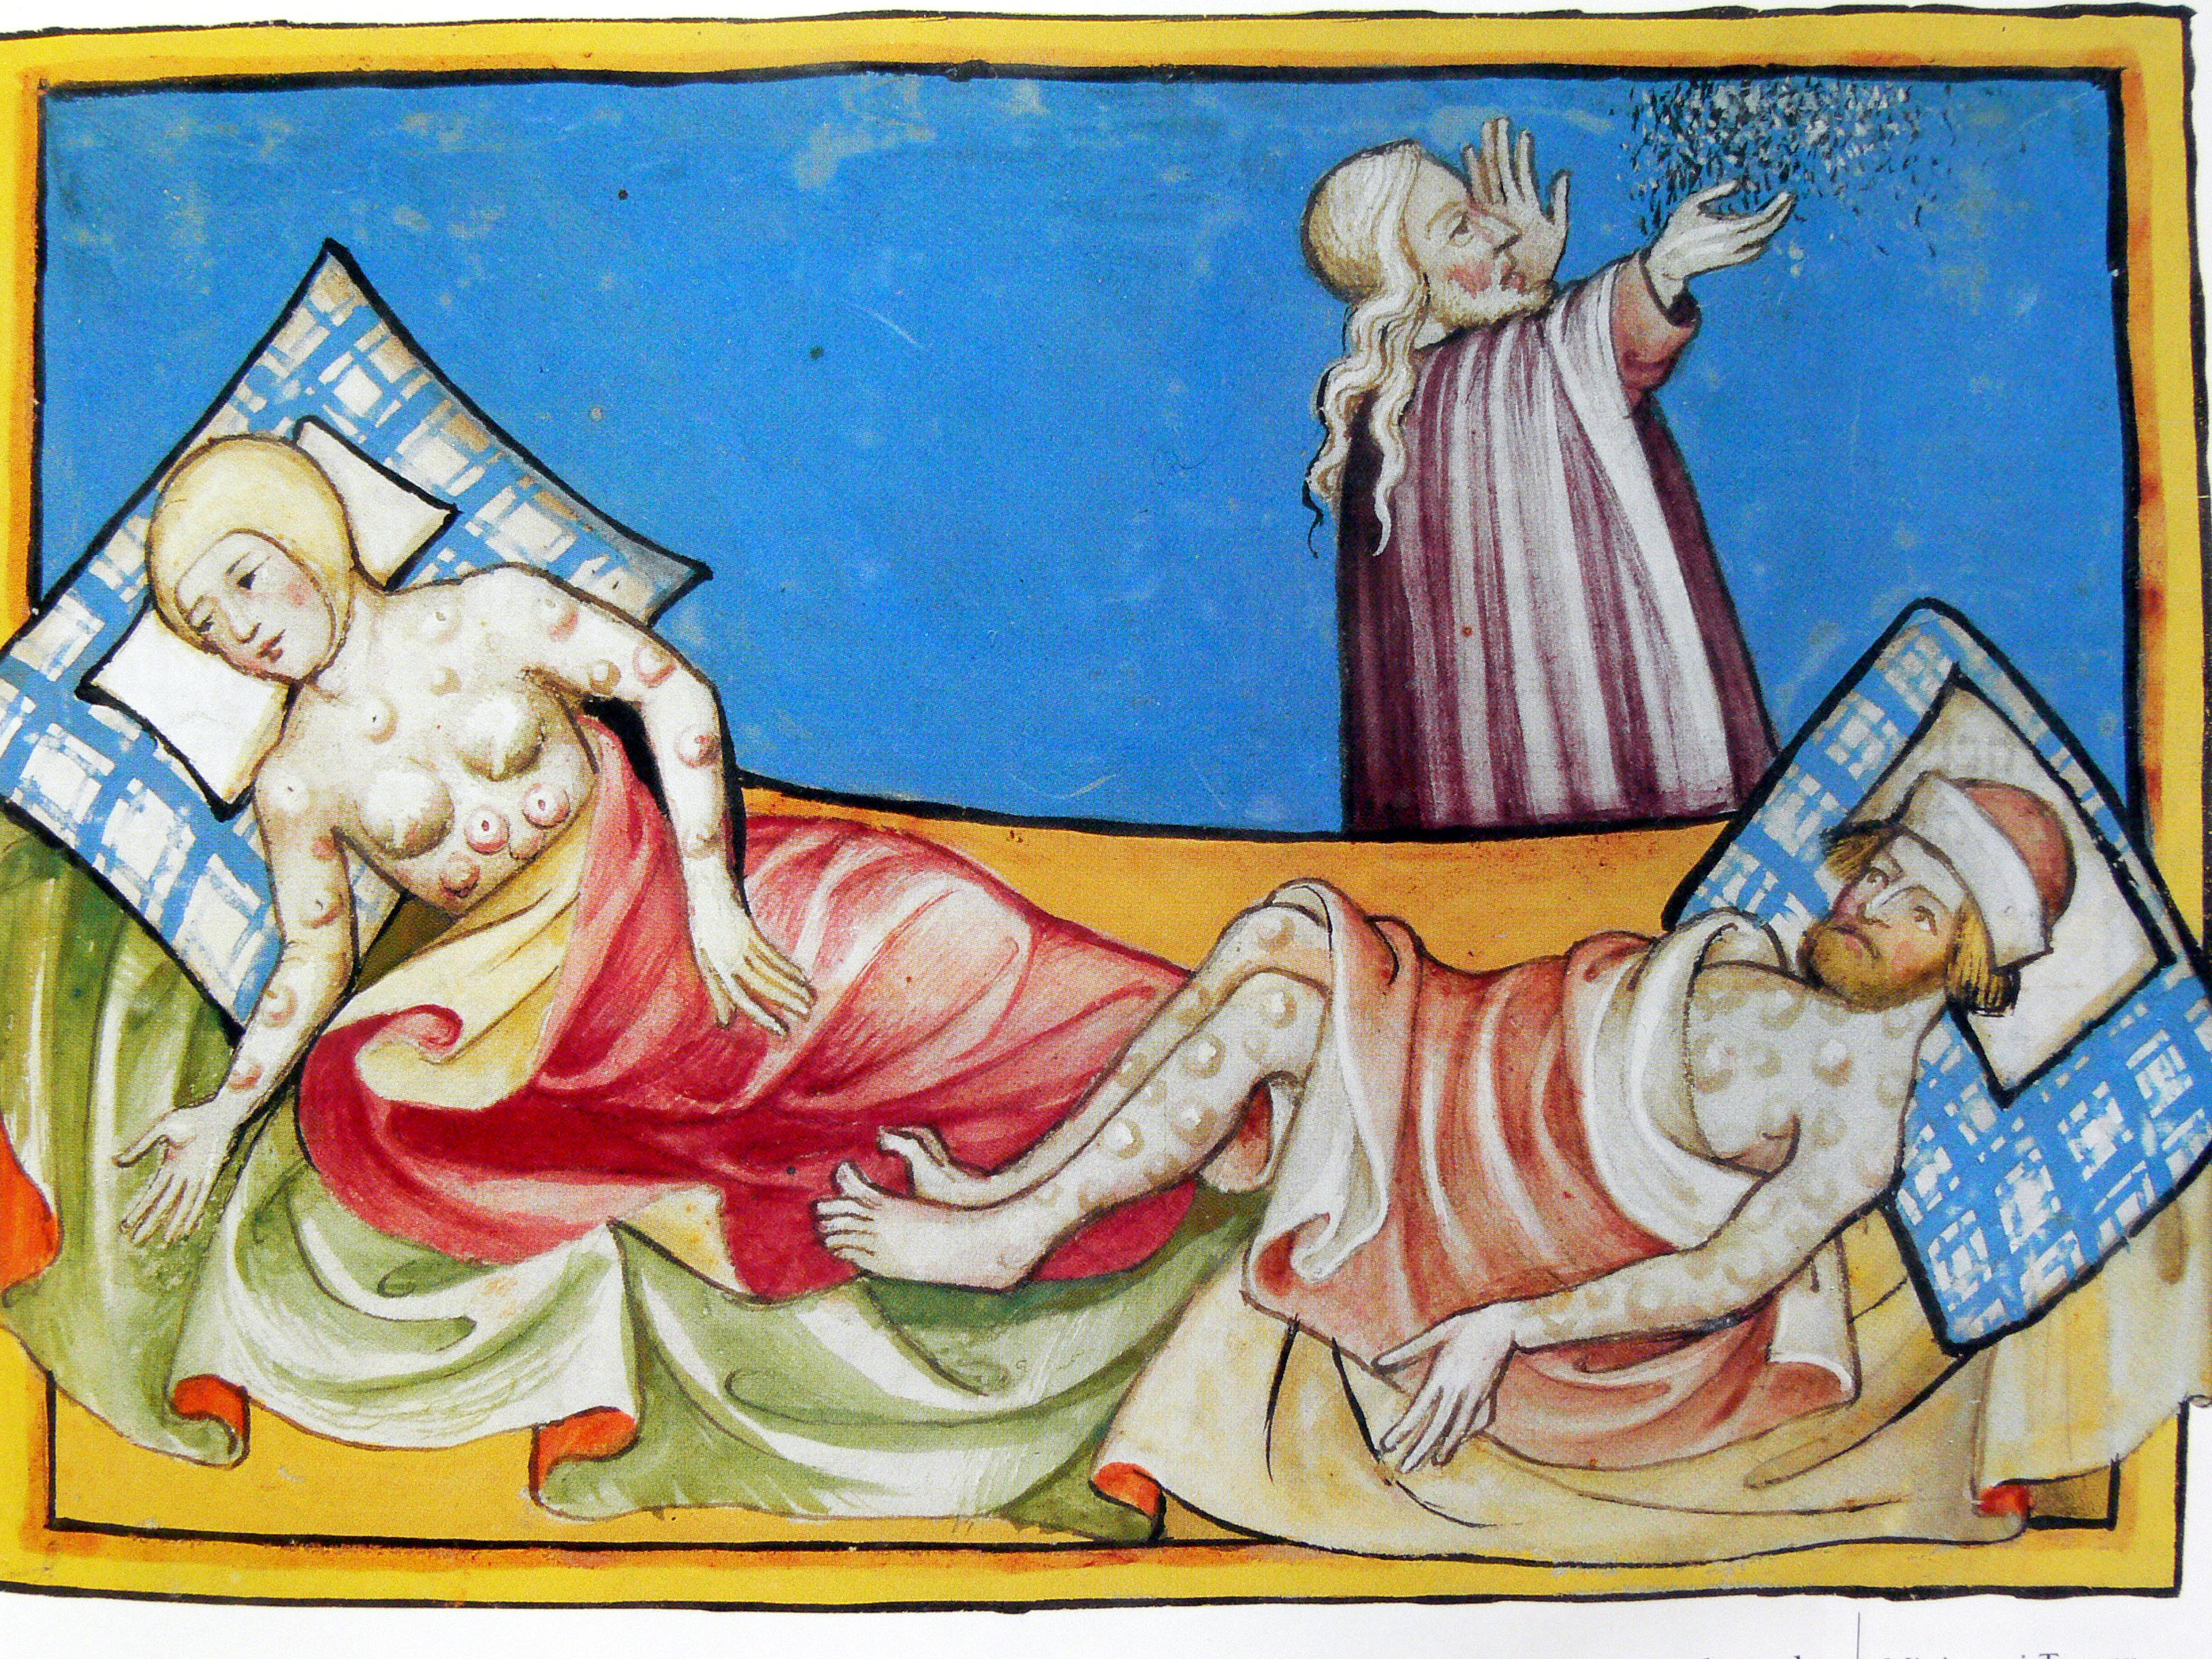 Miniature out of the Toggenburg Bible (Switzerland) of 1411, which has been widely interpreted as representing the outbreak of bubonic plague in Europe, but might actually show people suffering from smallpox as the bubonic plague normally causes blisters only in the groin and armpits. (Image: Wikimedia Commons)